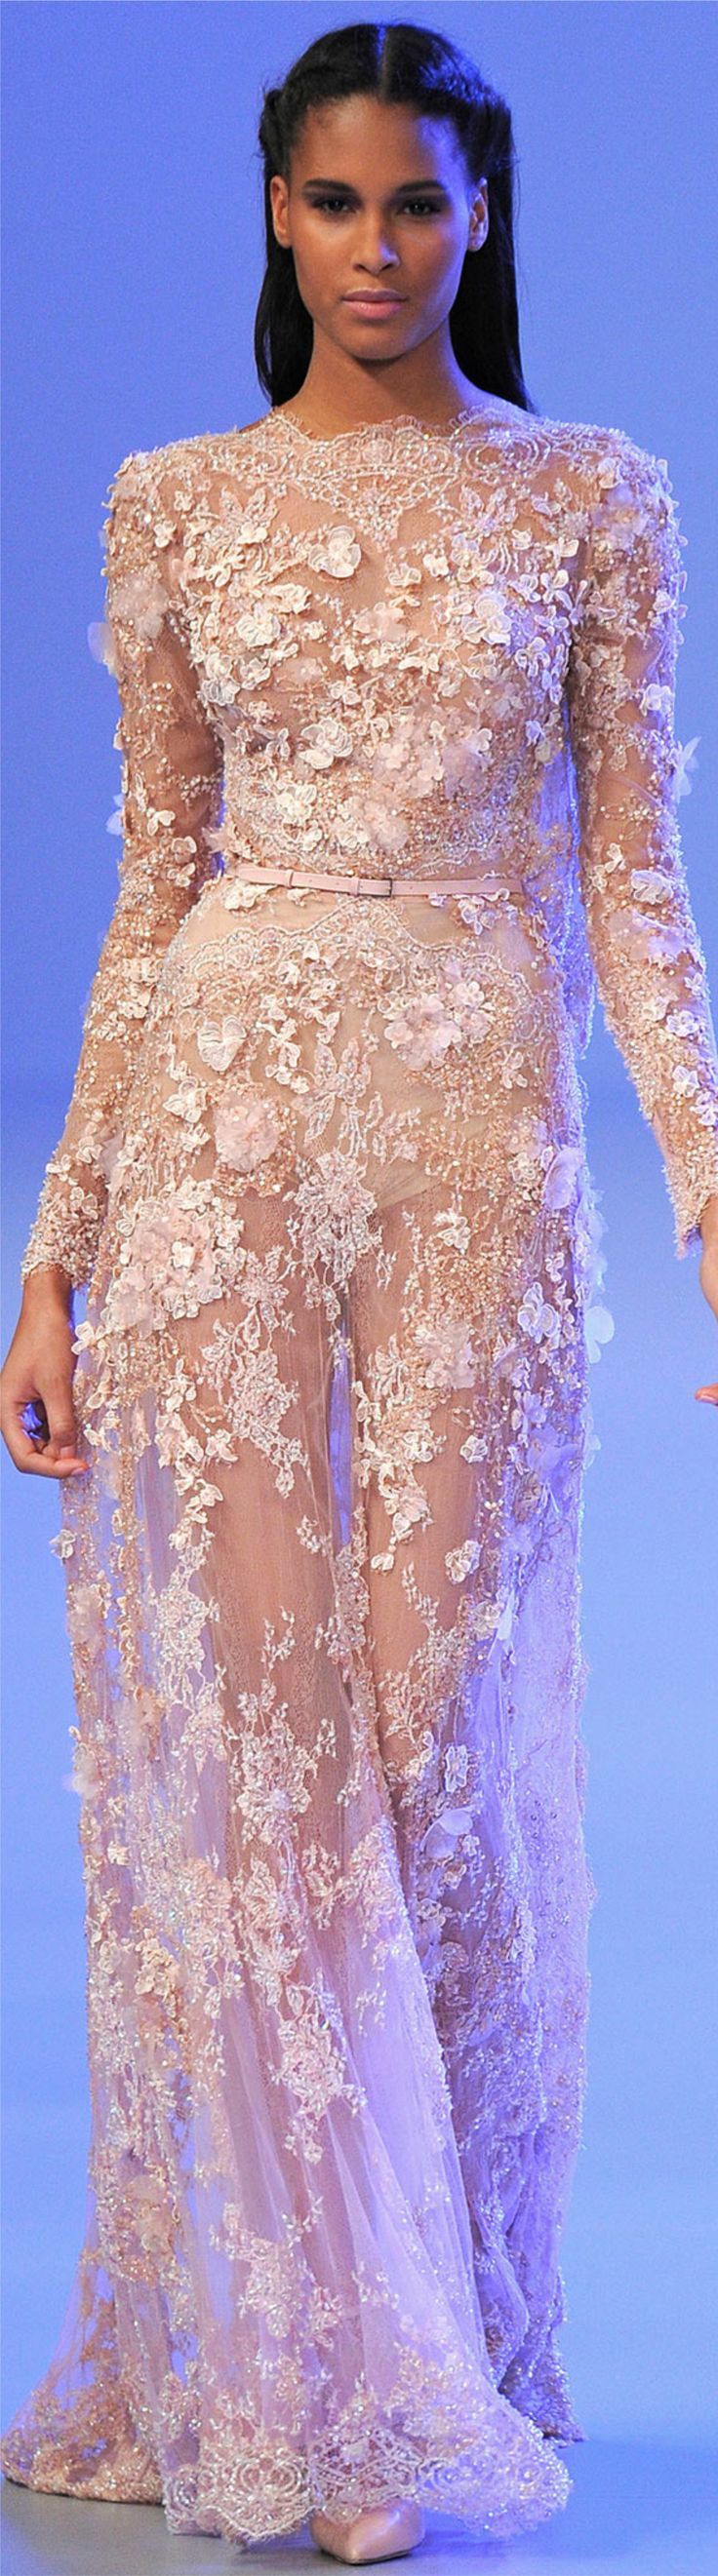 Best 225 Haute Couture!!! ideas on Pinterest | Evening gowns, Ball ...